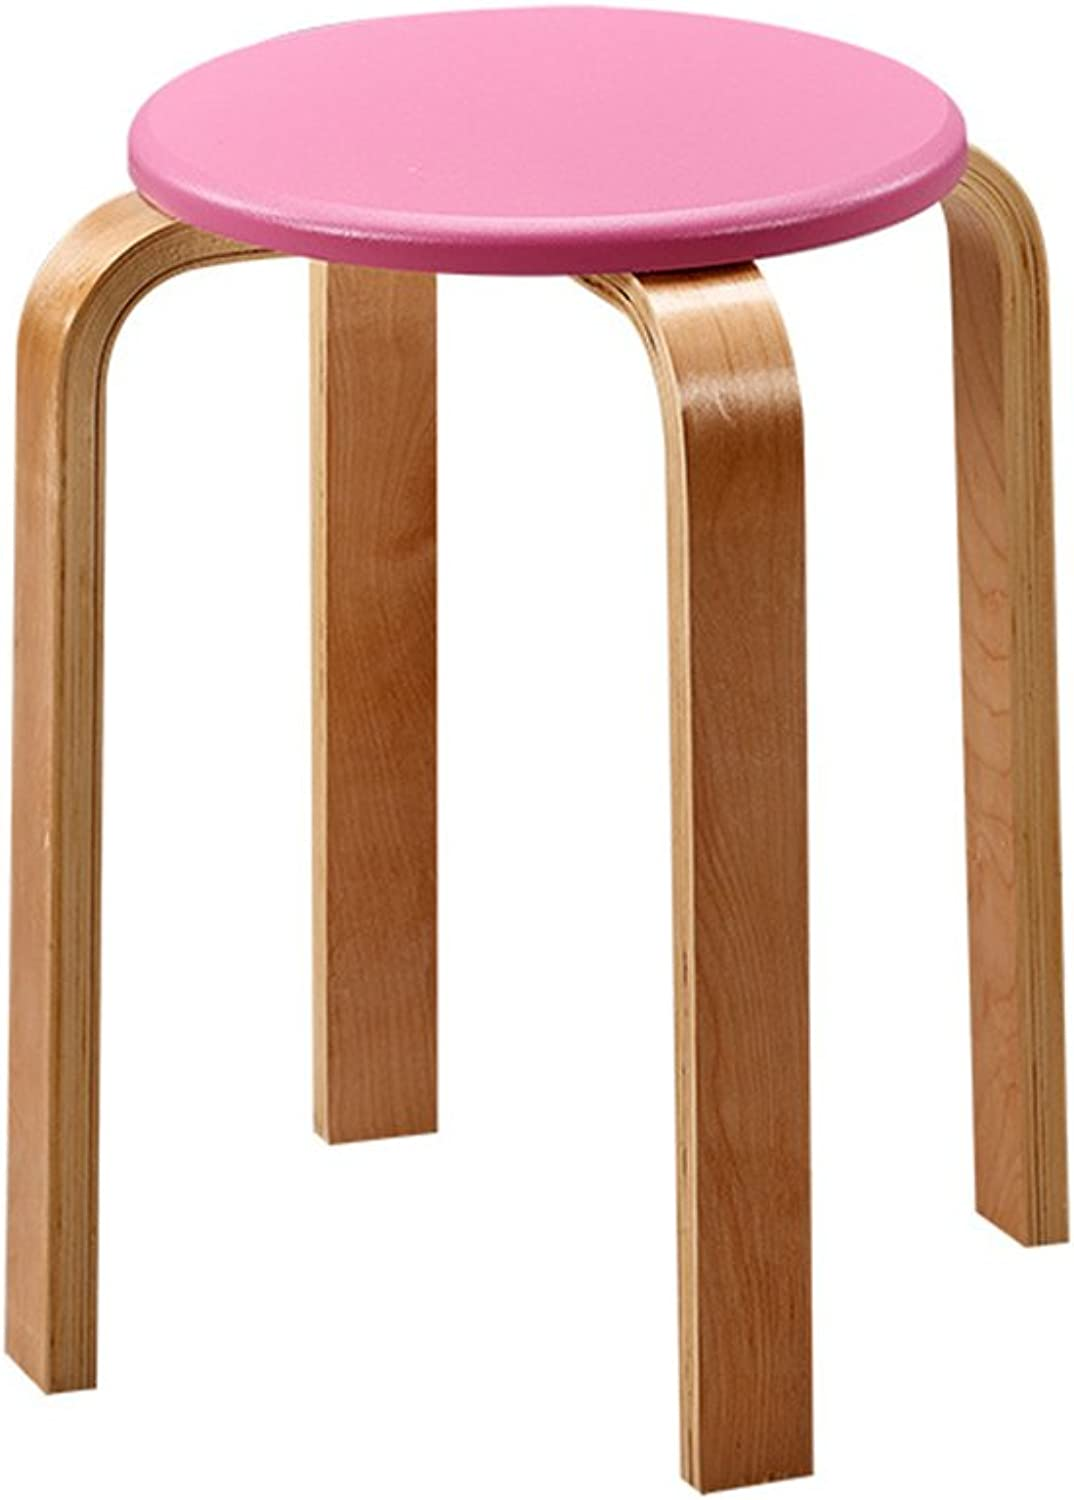 Wood Stool Round Bentwood Stools for Kitchen Office Parties Breakfast Wait 46 X 30 X2.5 cm (color   Pink)